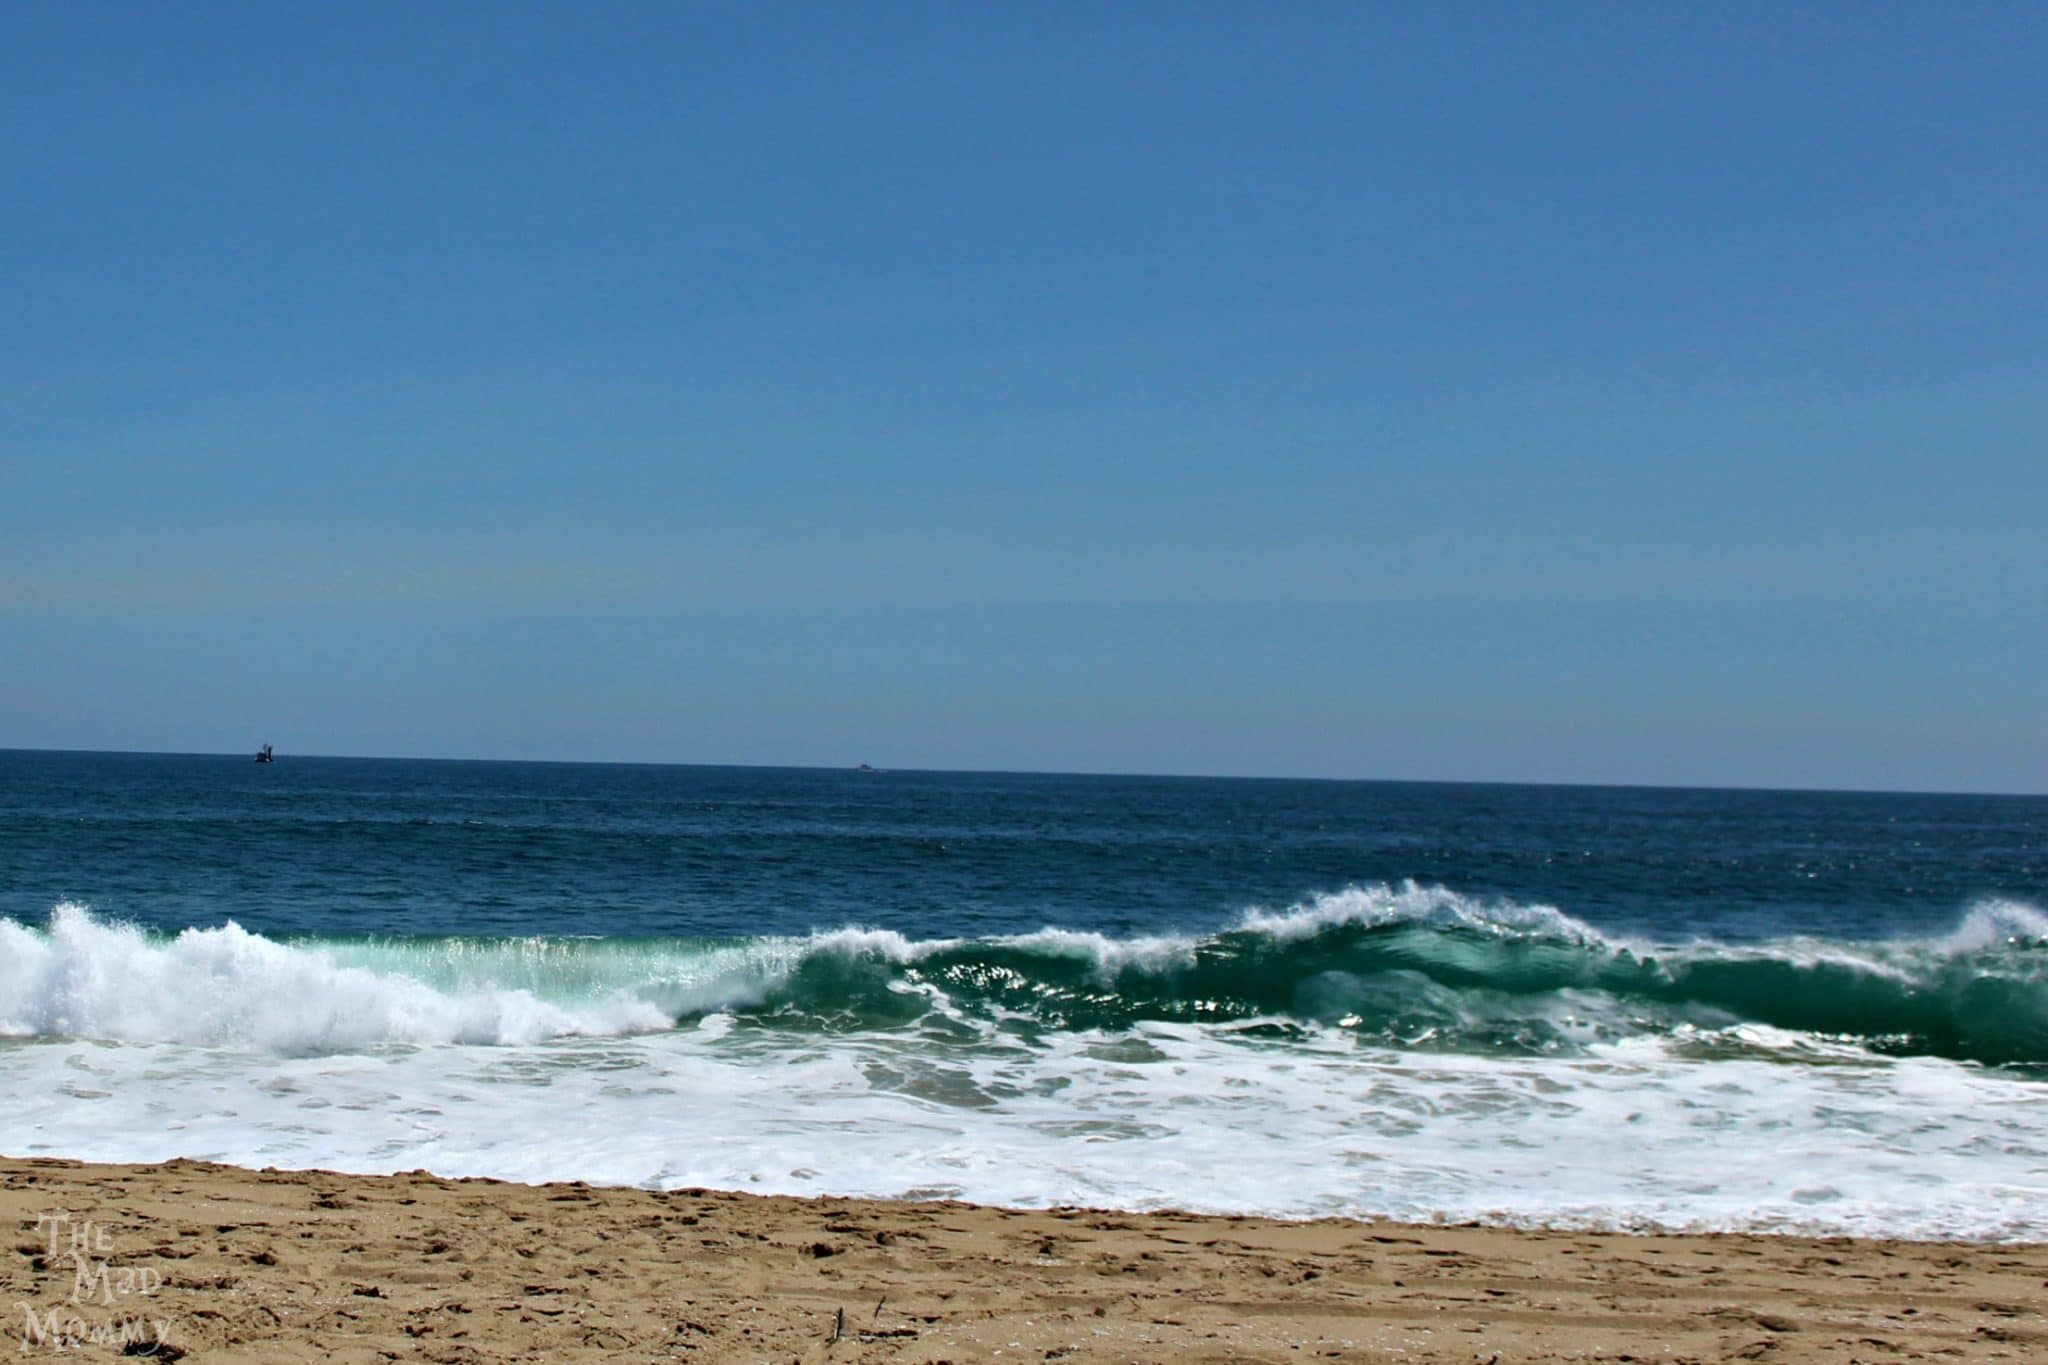 Watching the waves in Newport Beach, California is very peaceful and relaxing.